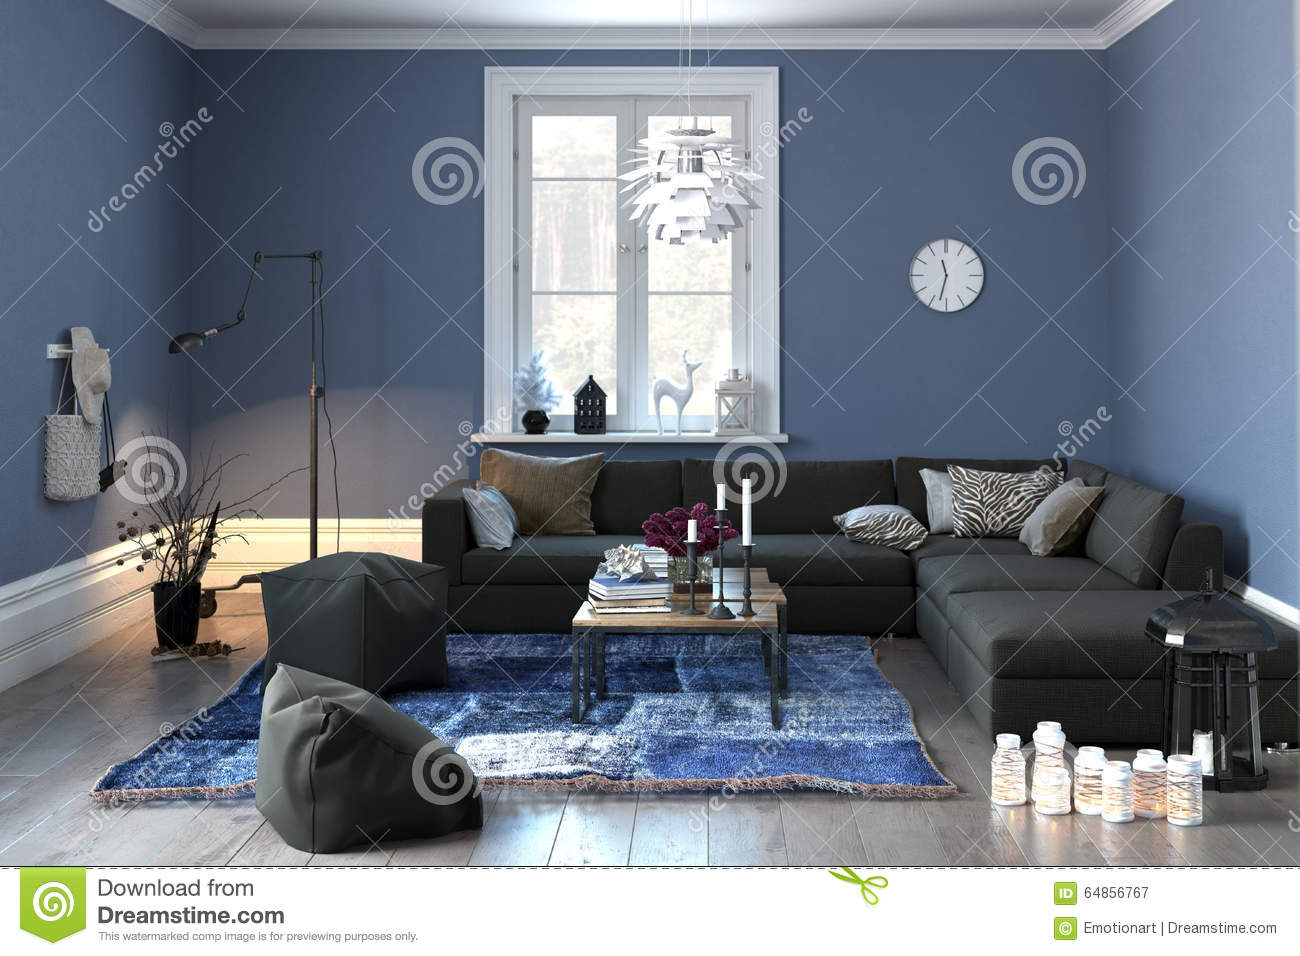 Interior Of A Modern Lounge In Grey And Blue